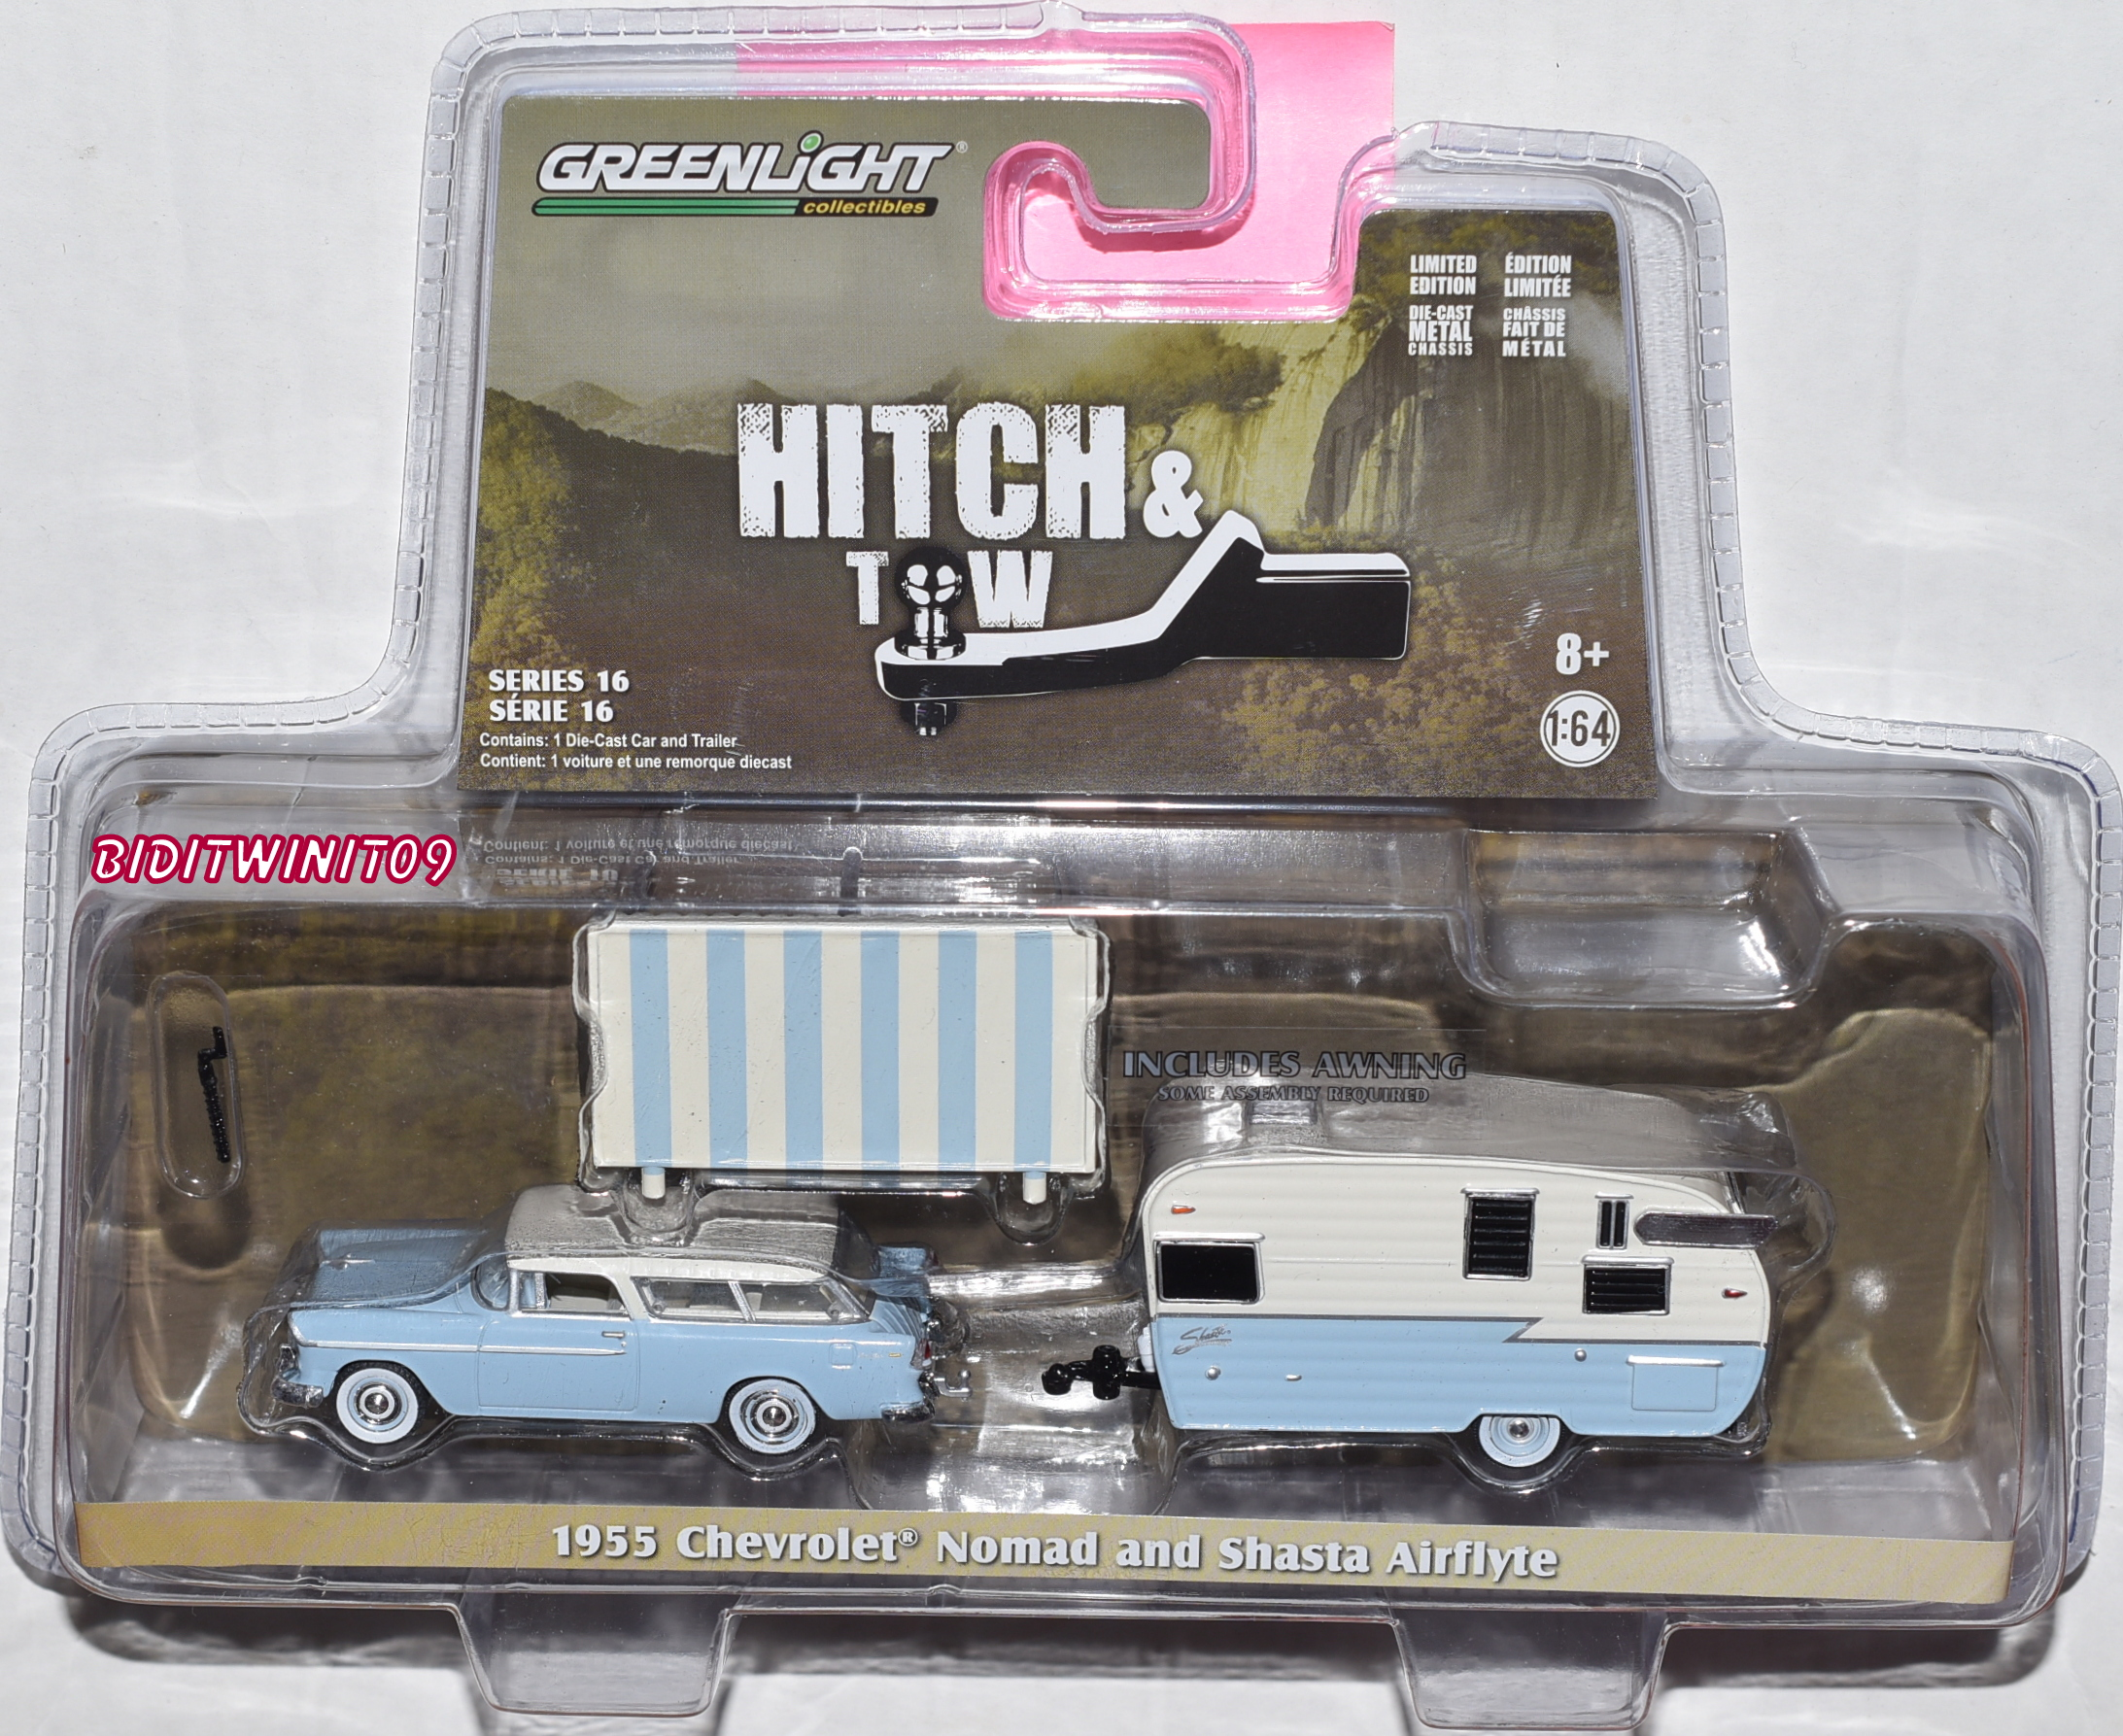 GREENLIGHT HITCH & TOW 1955 CHEVROLET NOMAD AND SHASTA AIRFLYTE SERIES 16